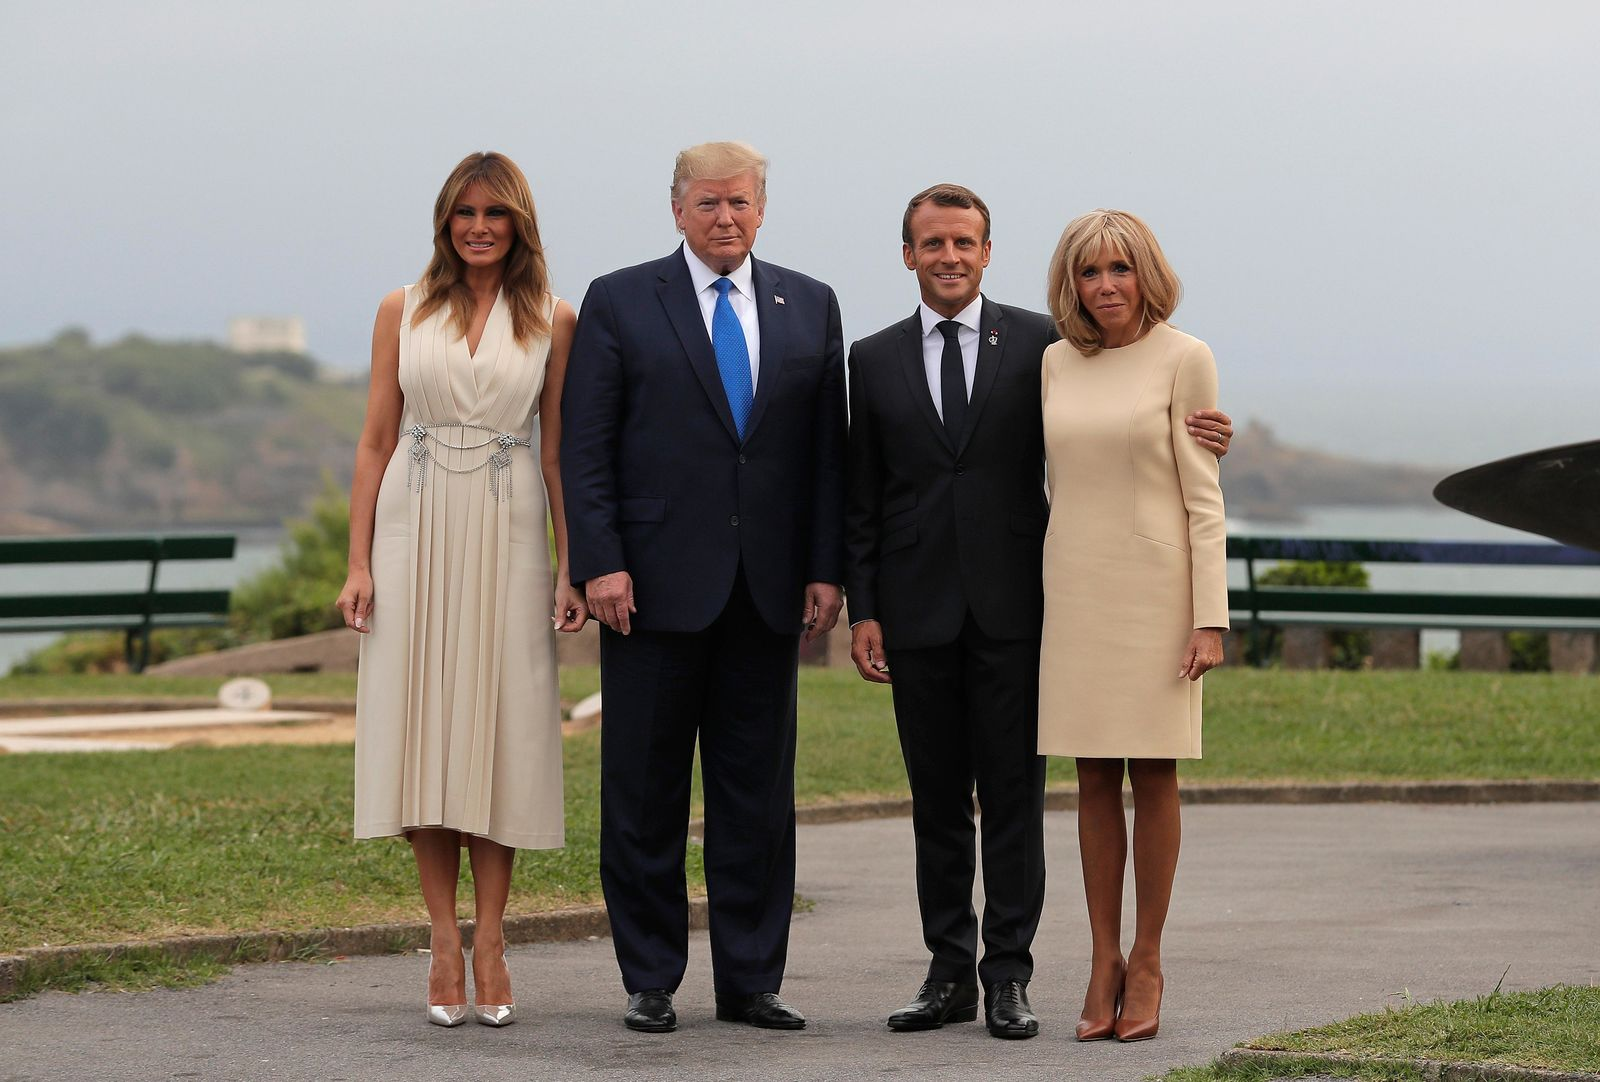 French President Emmanuel Macron and his wife Brigitte welcome President Donald Trump and first lady Melania Trump at the Biarritz lighthouse, southwestern France, ahead of a working dinner Saturday, Aug.24, 2019. Shadowed by the threat of global recession, a U.S. trade war with China and the possibility of one against Europe, the posturing by leaders of the G-7 rich democracies began well before they stood together for a summit photo. (AP Photo/Markus Schreiber)